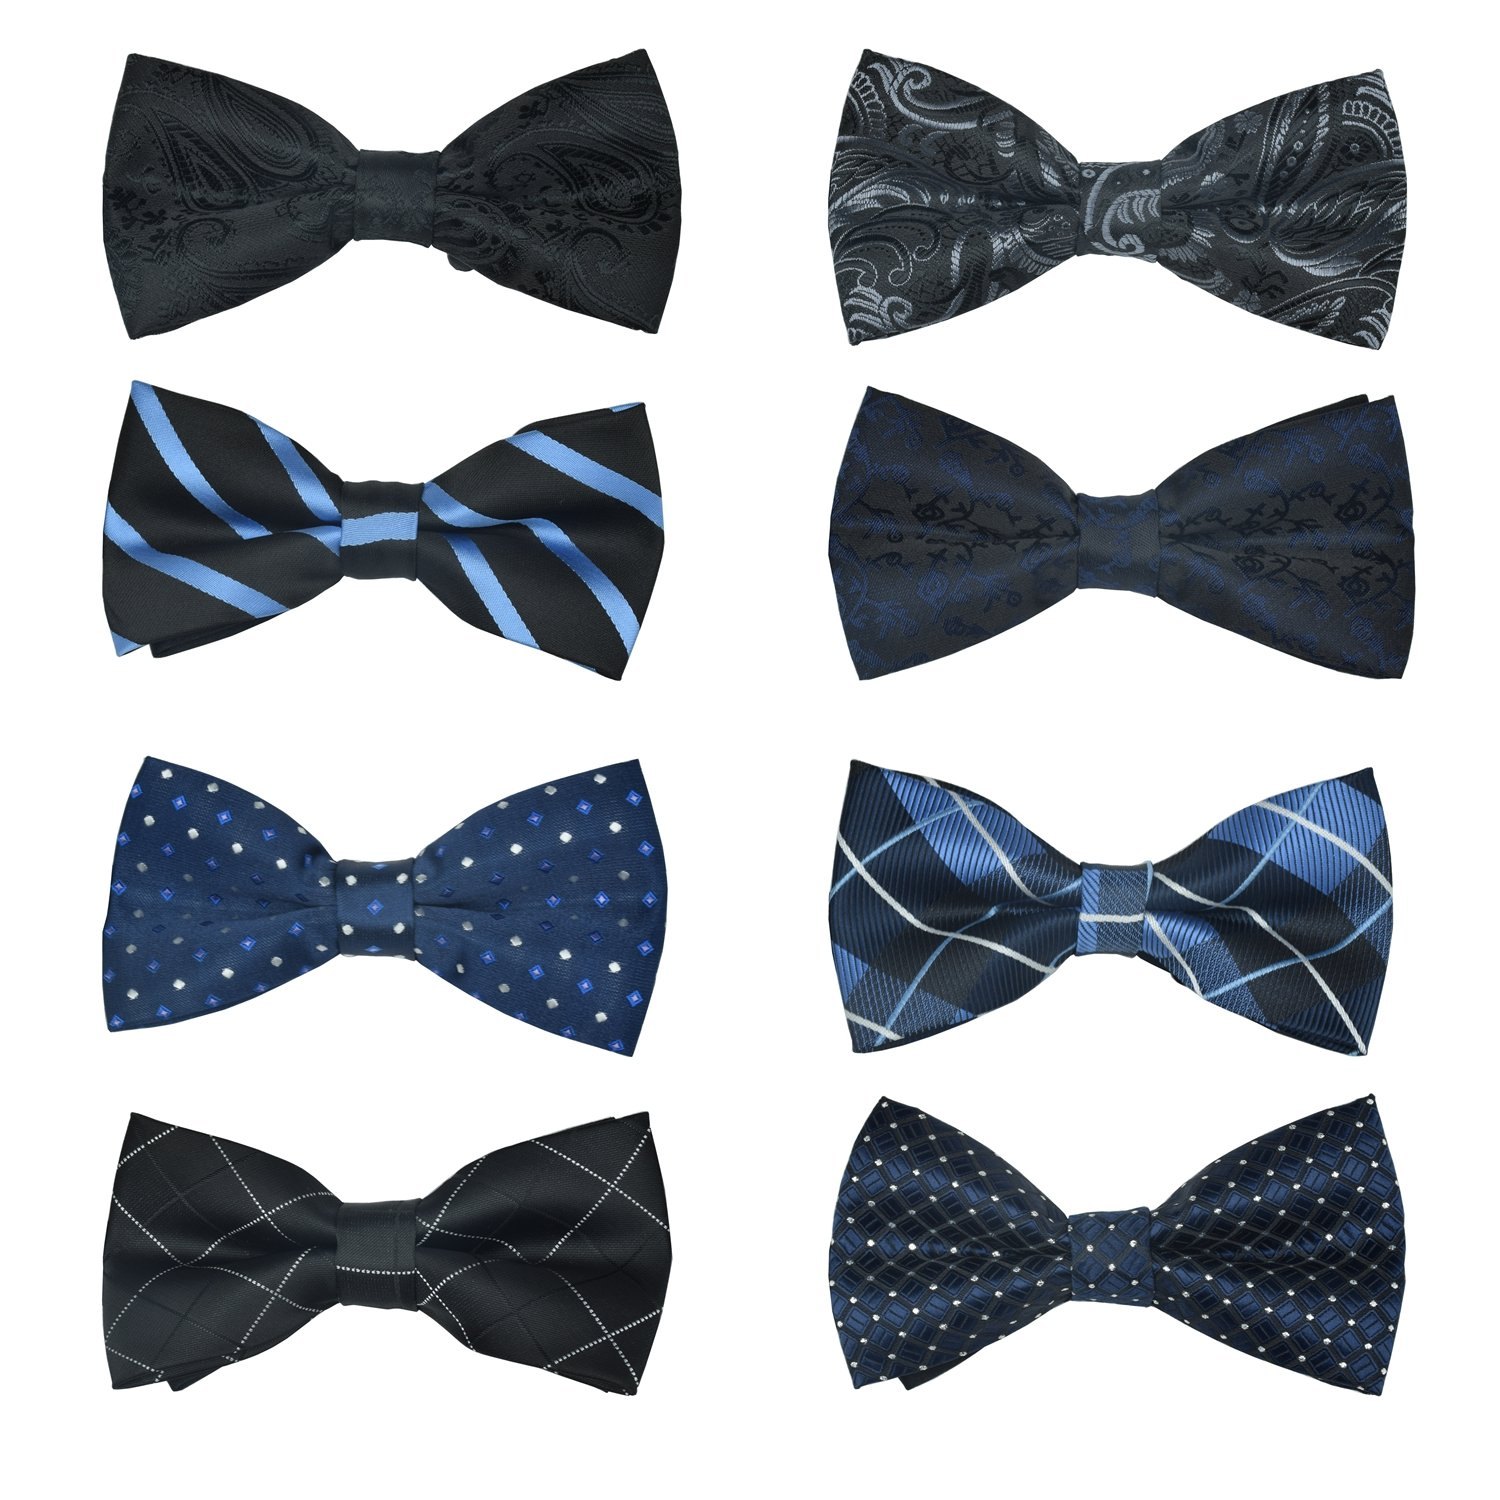 8 PACKS Elegant Men's Adjustable Pre-tied bow ties for Men Boys in Various Colors … (STYLE8)